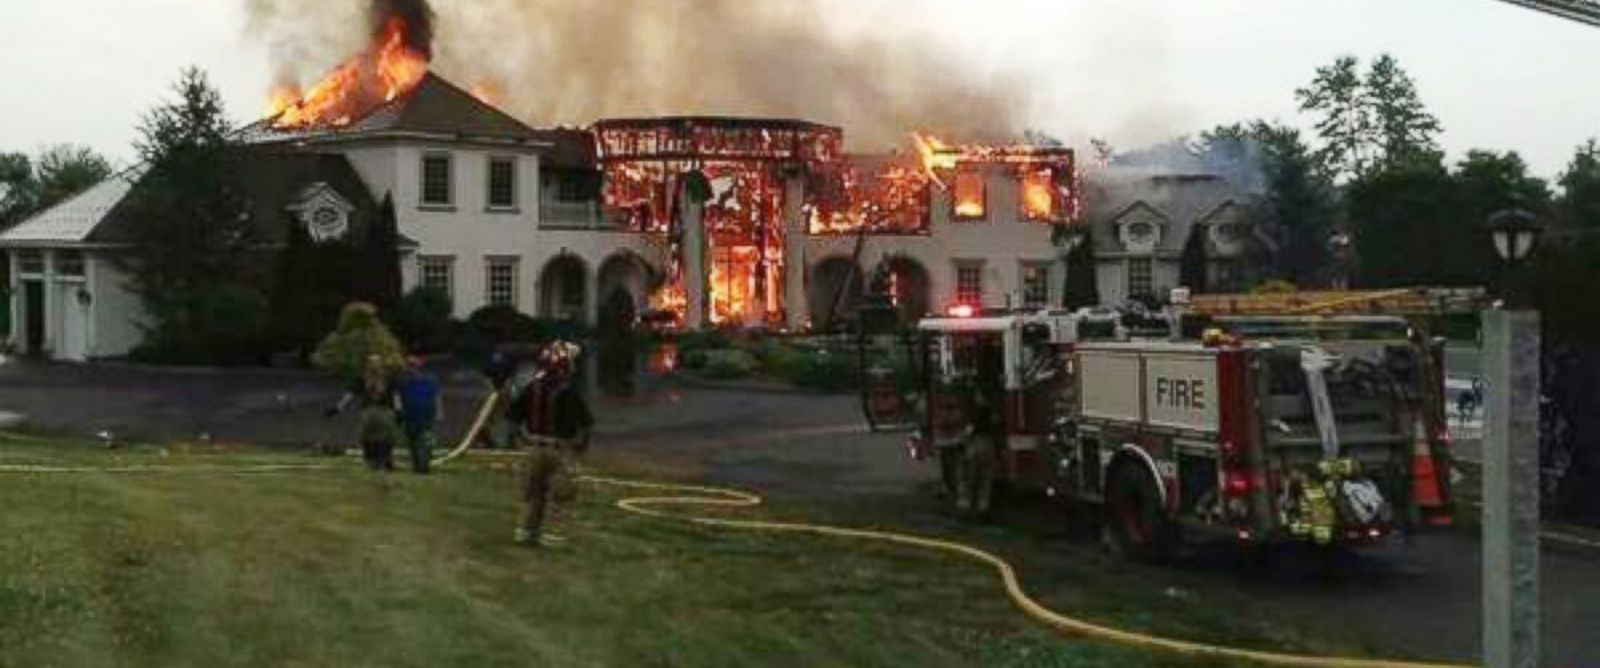 """PHOTO: This photo was posted to Twitter on July 3, 2014 with the caption, """"Middlebury ct...mansion fire..."""""""